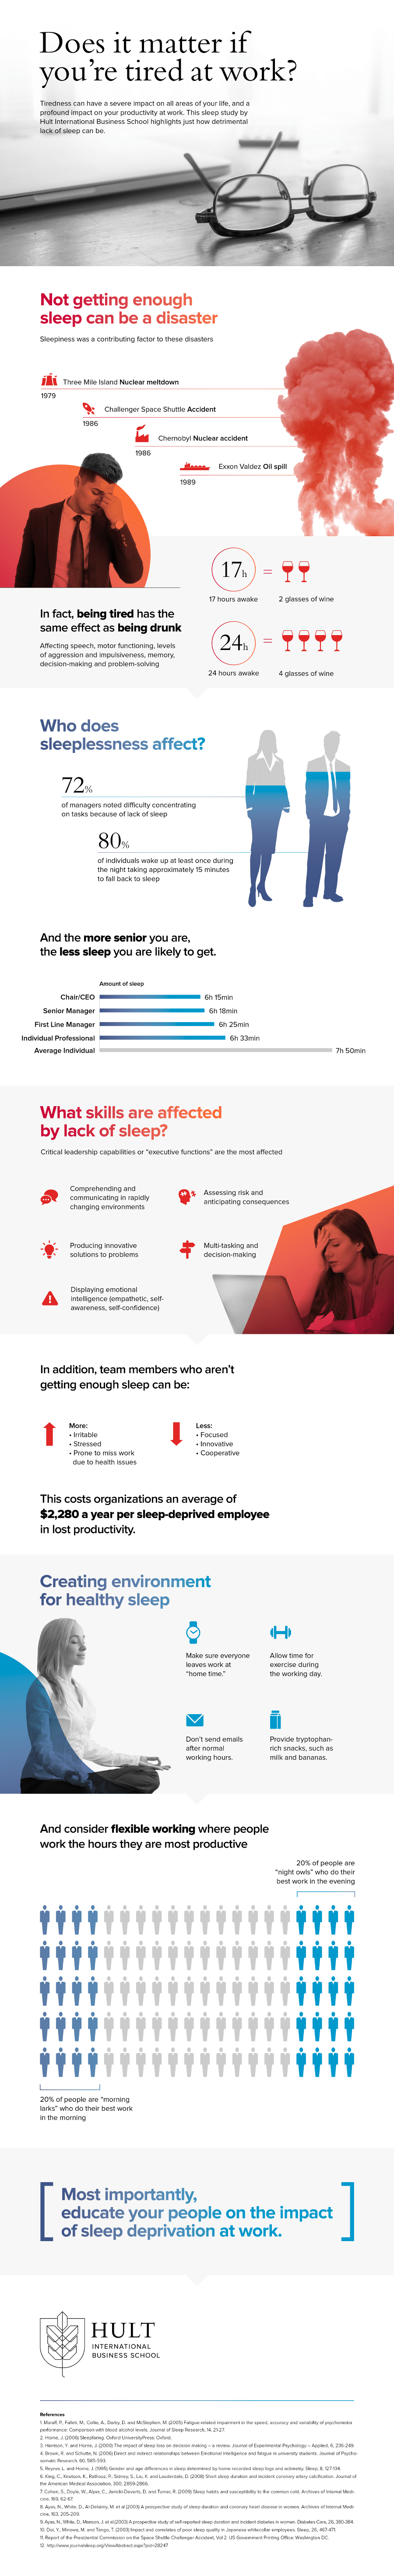 Sleep Deprivation at Work Infographic